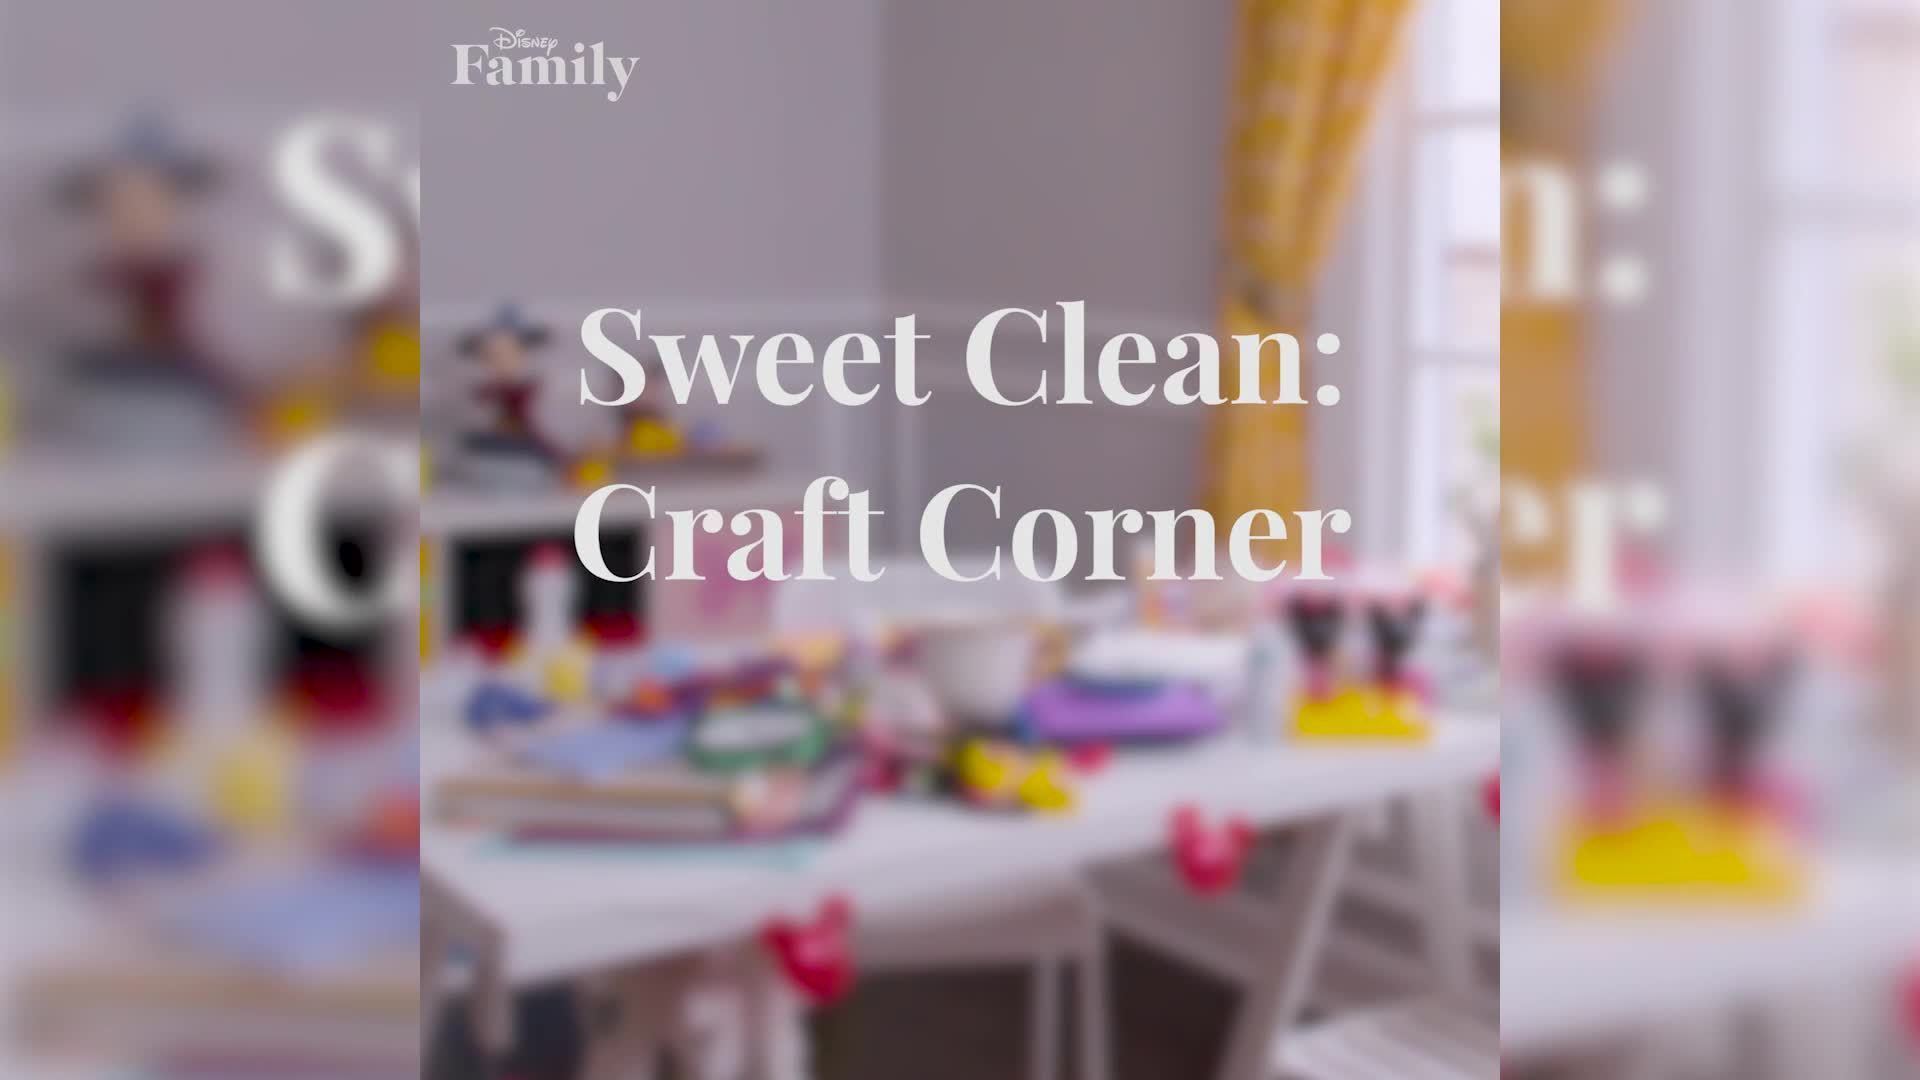 Sweet Clean: Craft Corner | Disney Family